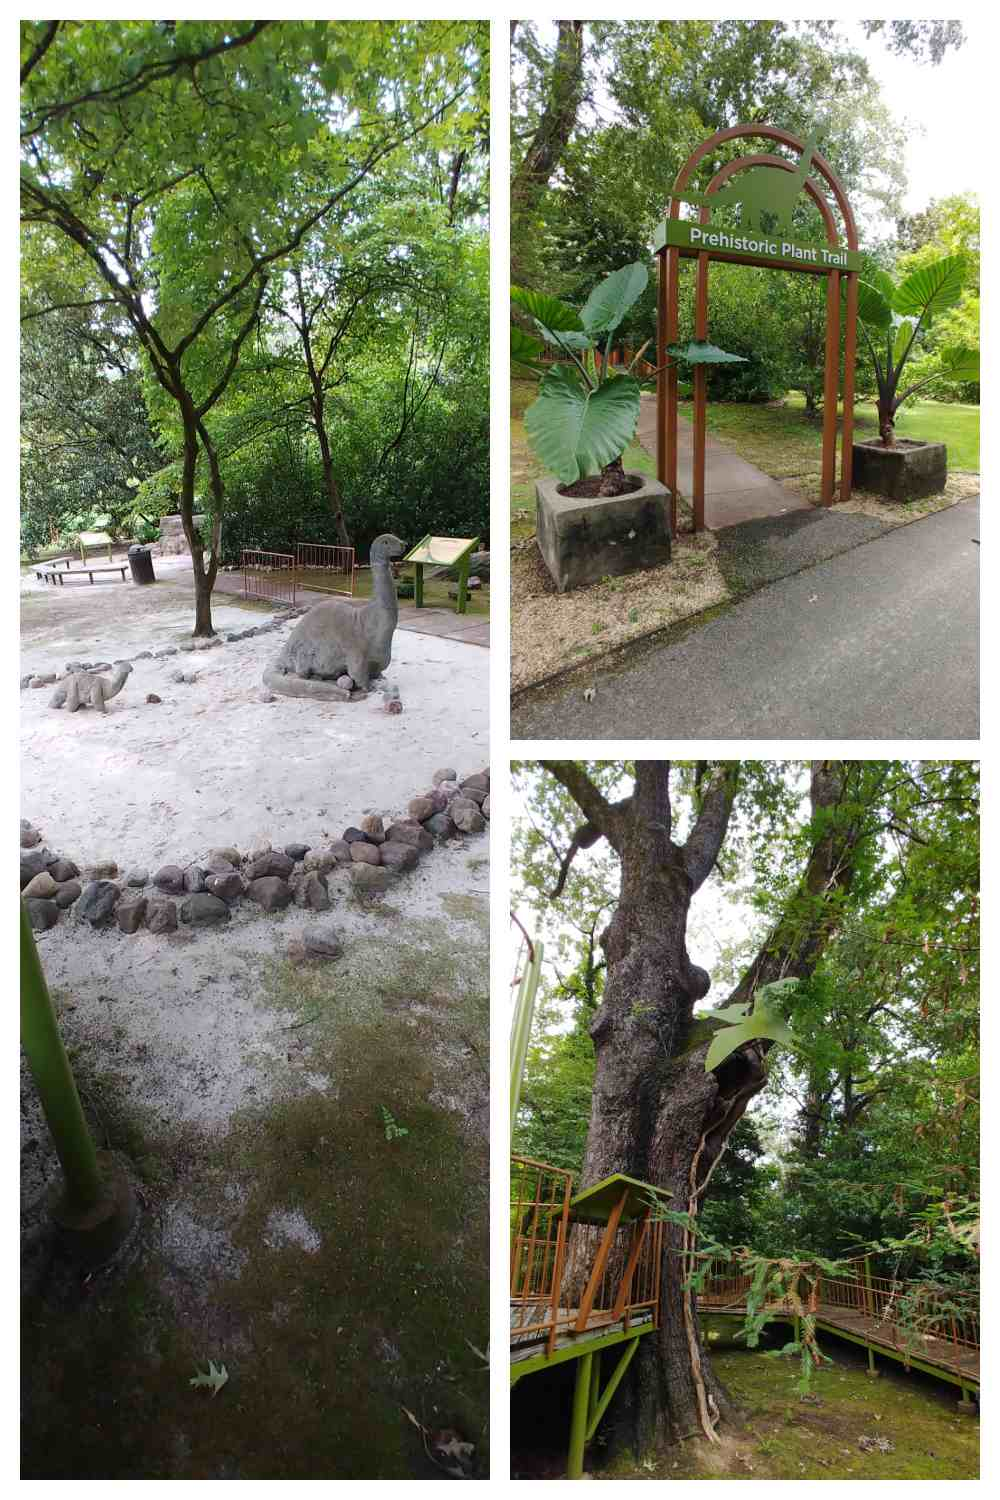 Dinosaur statues, entry arbor and tree in a collage.